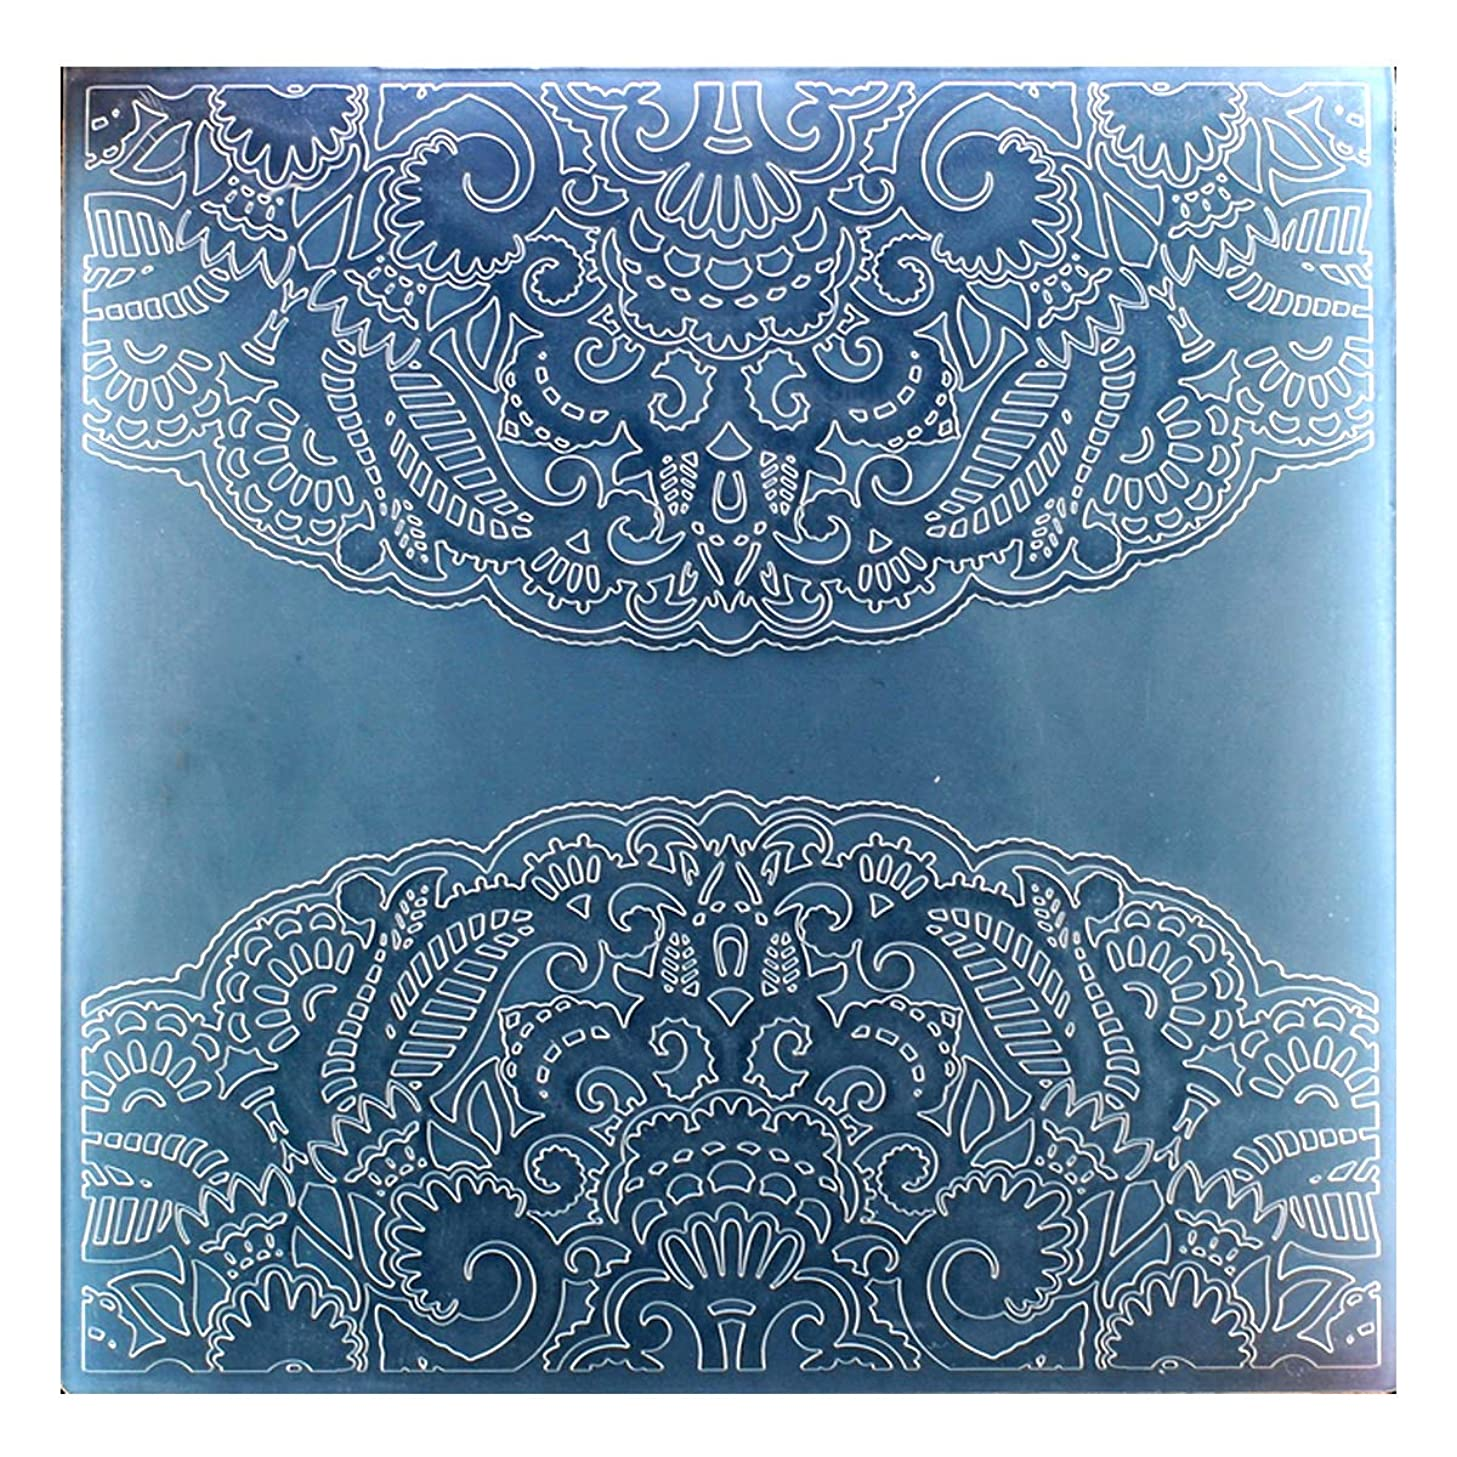 Kwan Crafts Large Size Flowers Corner Plastic Embossing Folders for Card Making Scrapbooking and Other Paper Crafts, 19.7x19.7cm